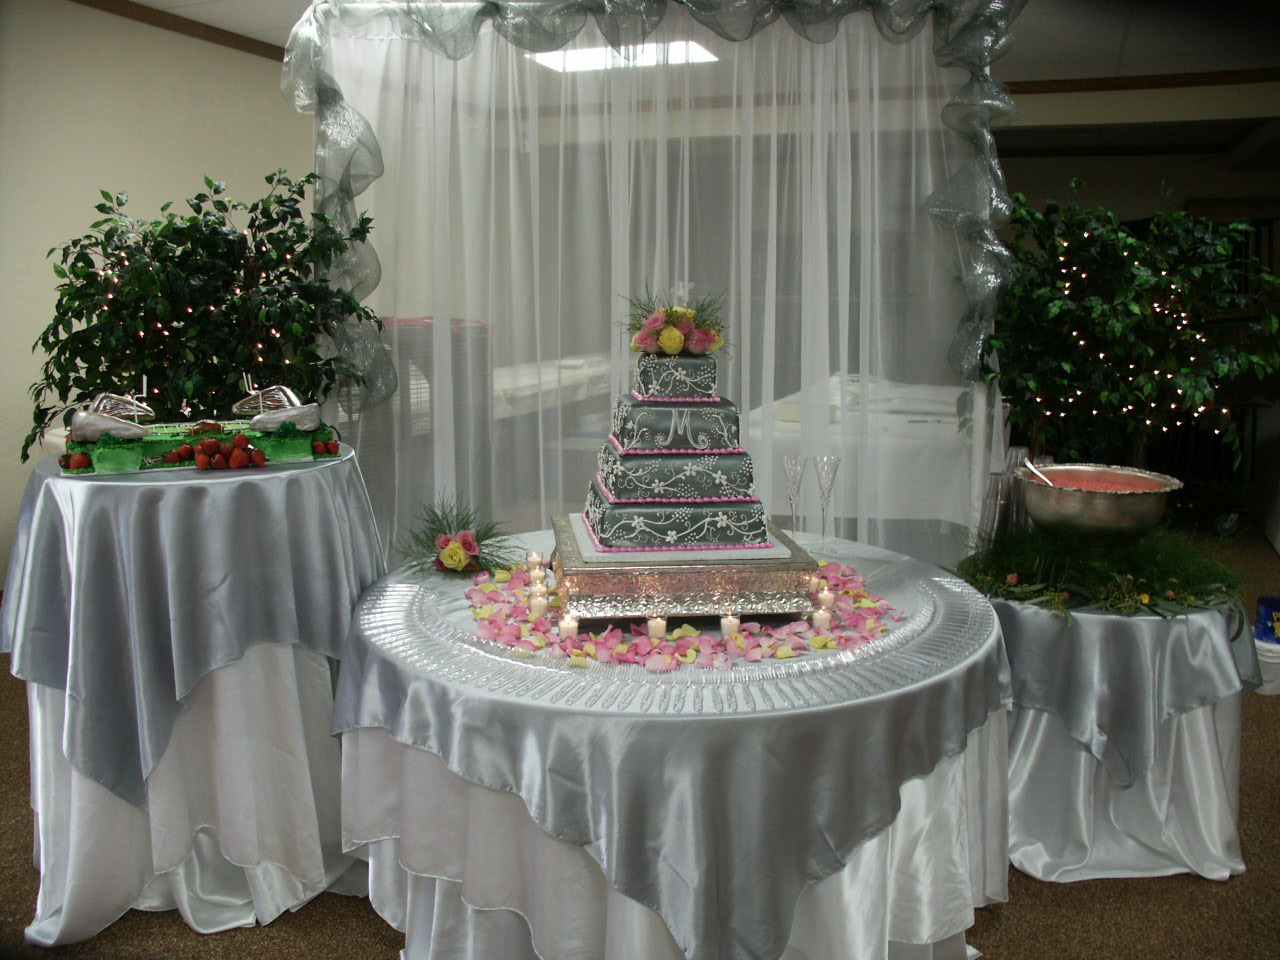 Wedding Cake by The Cake Lady